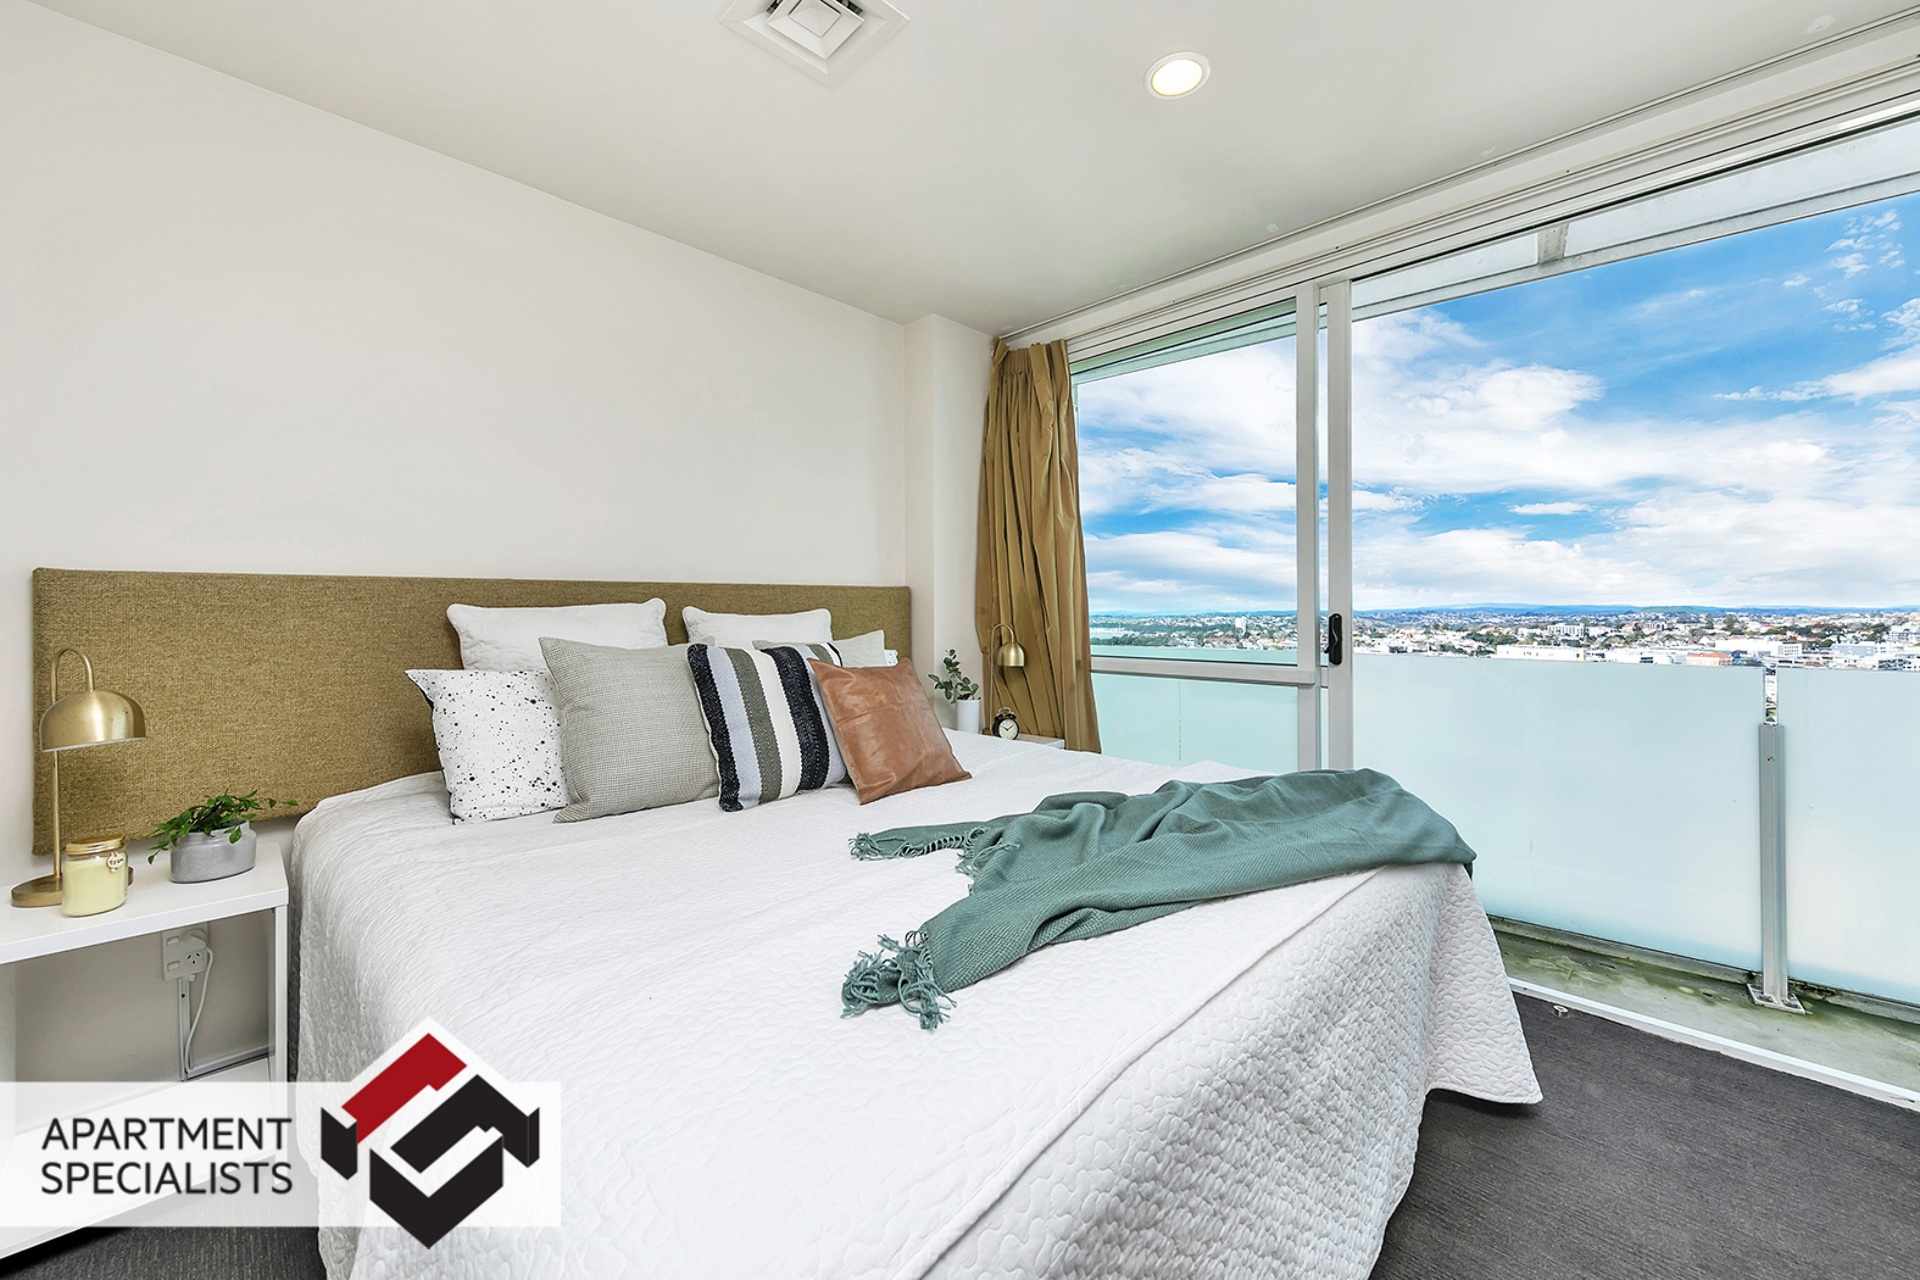 0 | 10 Waterloo Quadrant, City Centre | Apartment Specialists